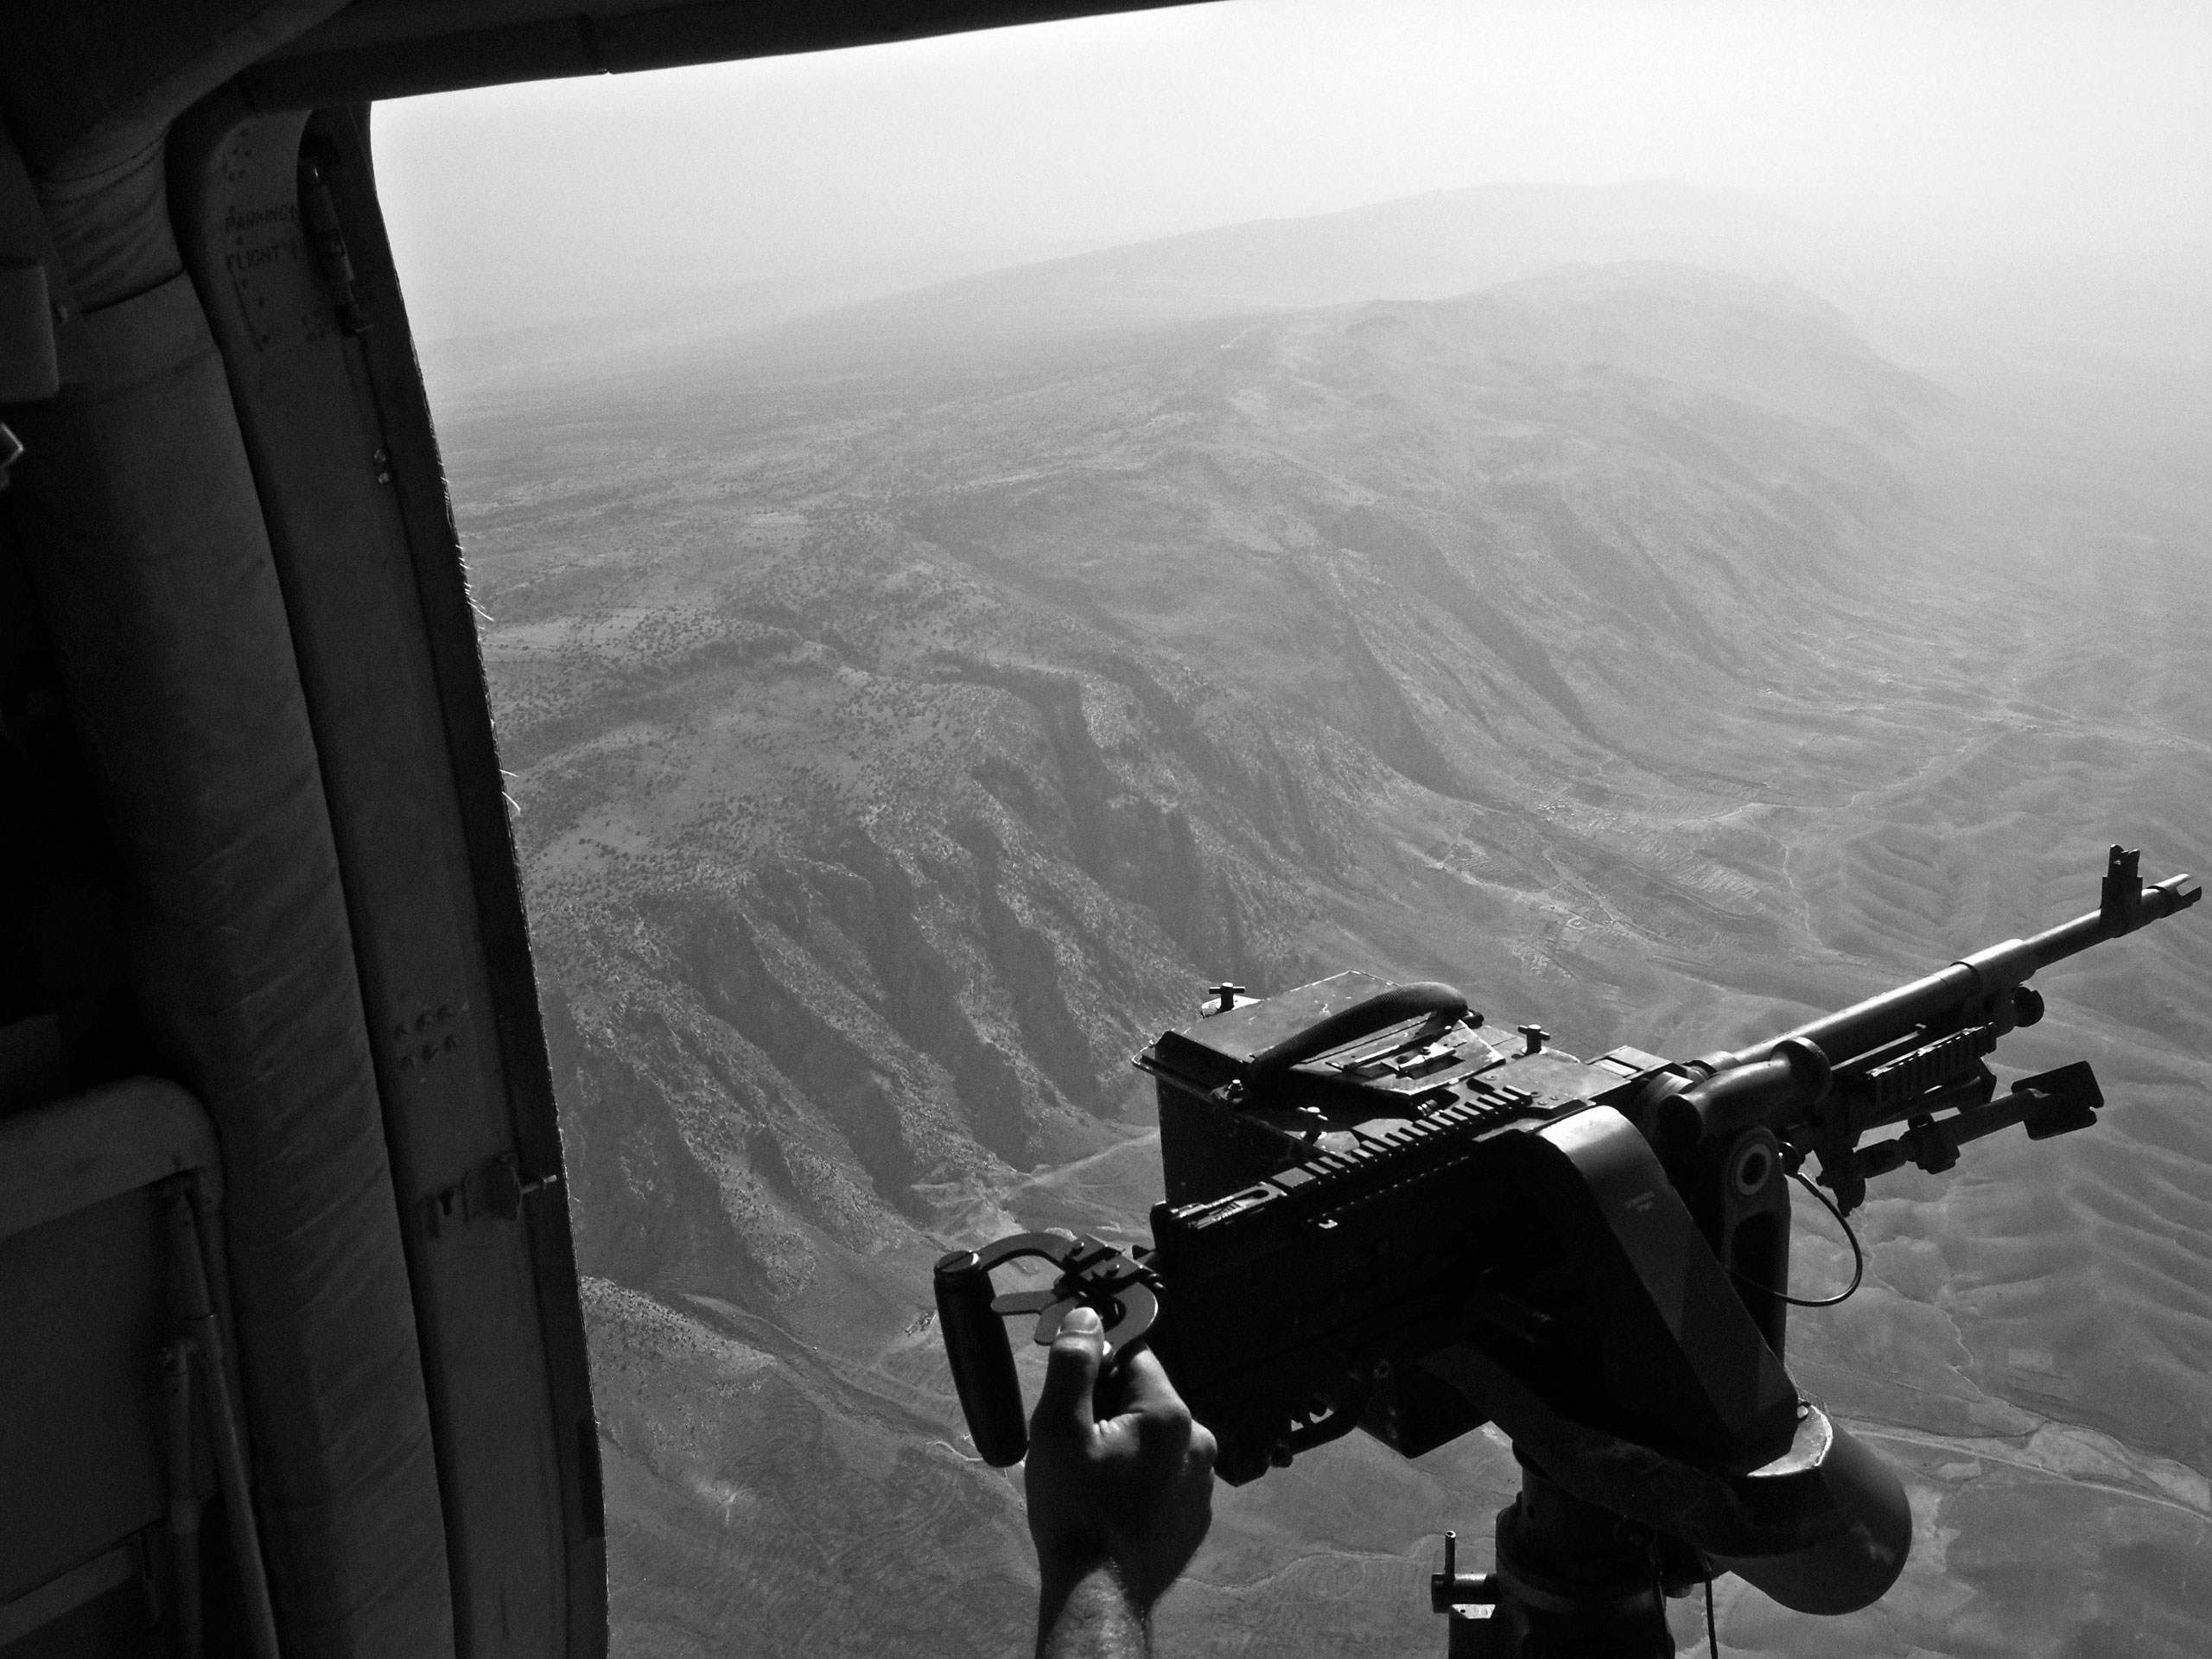 The view from an Iraqi air force helicopter on a rescue mission to drop food and aid to thousands of displaced Yezidis taking refuge in the Sinjar Mountains. Iraq. Aug. 12, 2014.